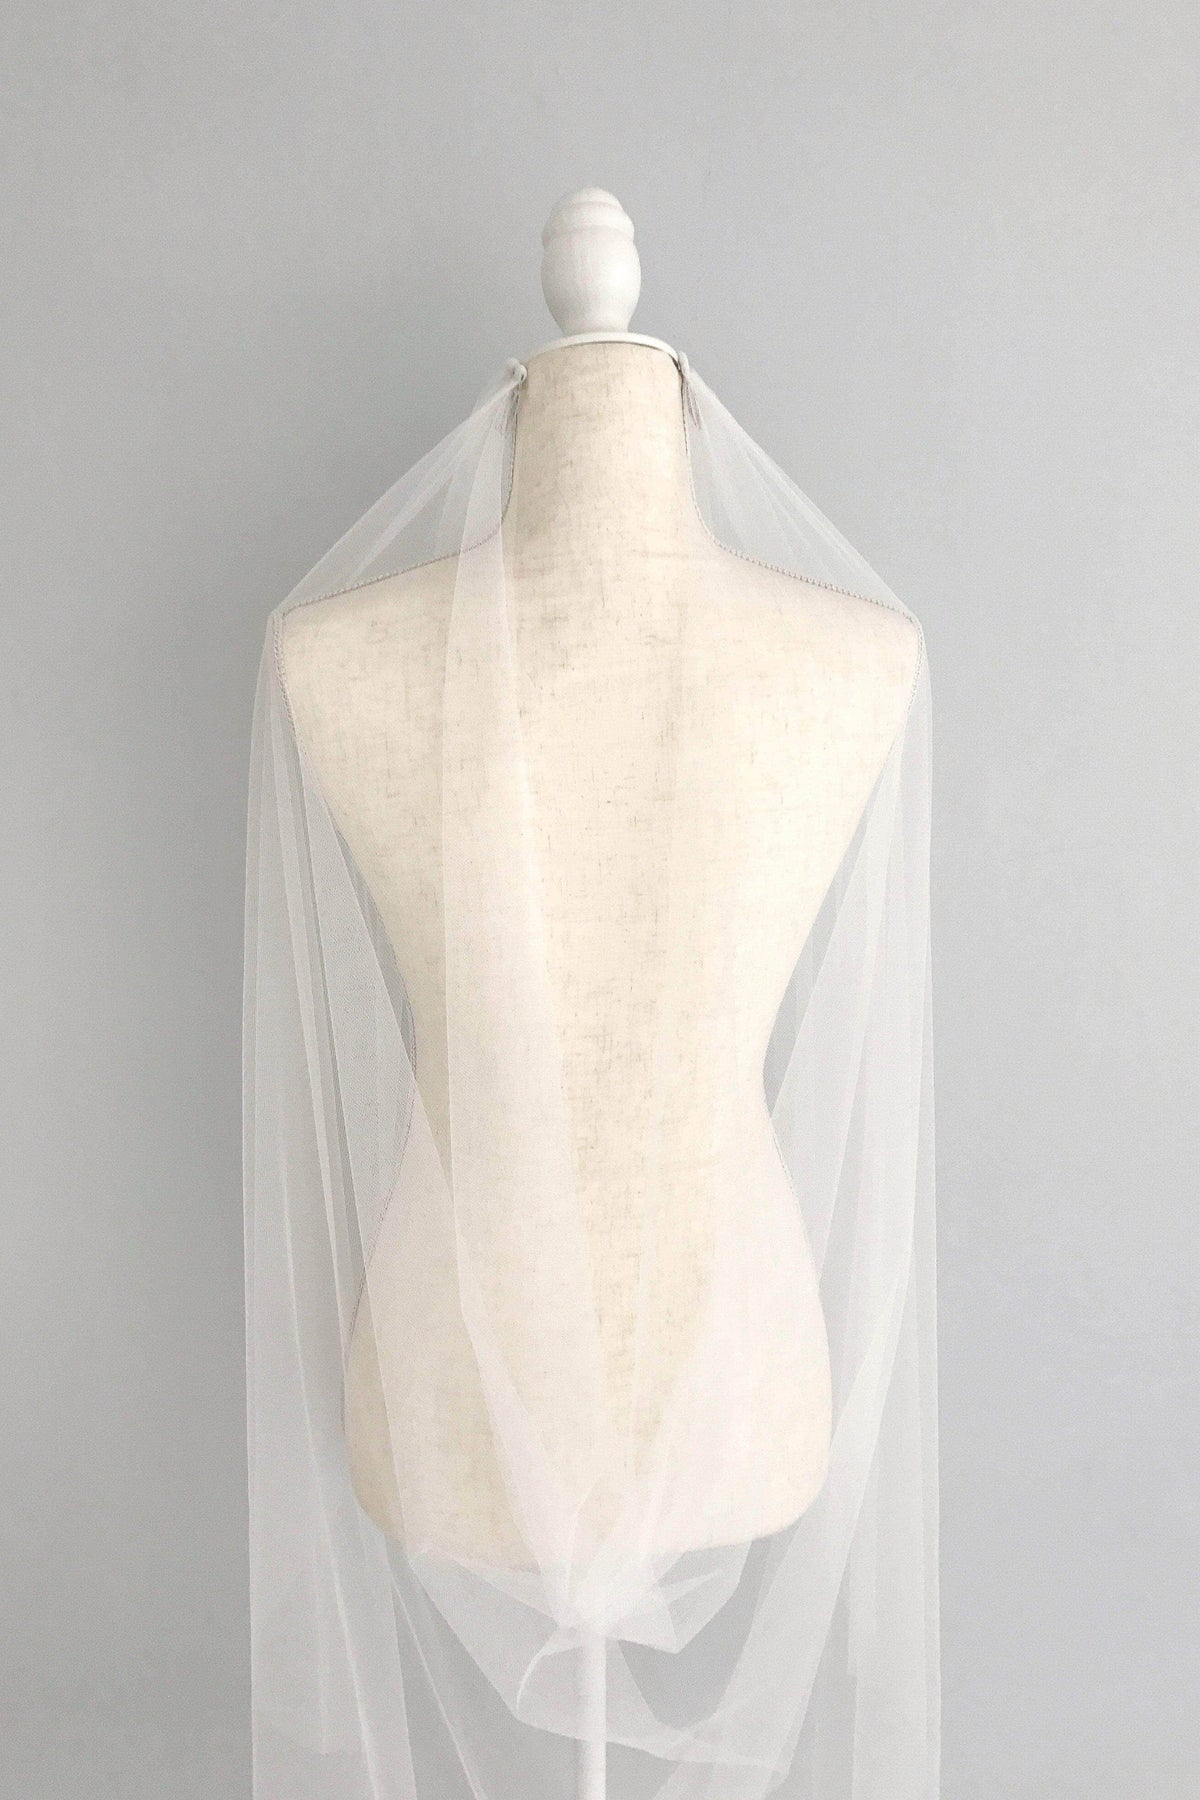 Wedding Veil Two comb drape cut edge silk style wedding veil - 'Saffron'